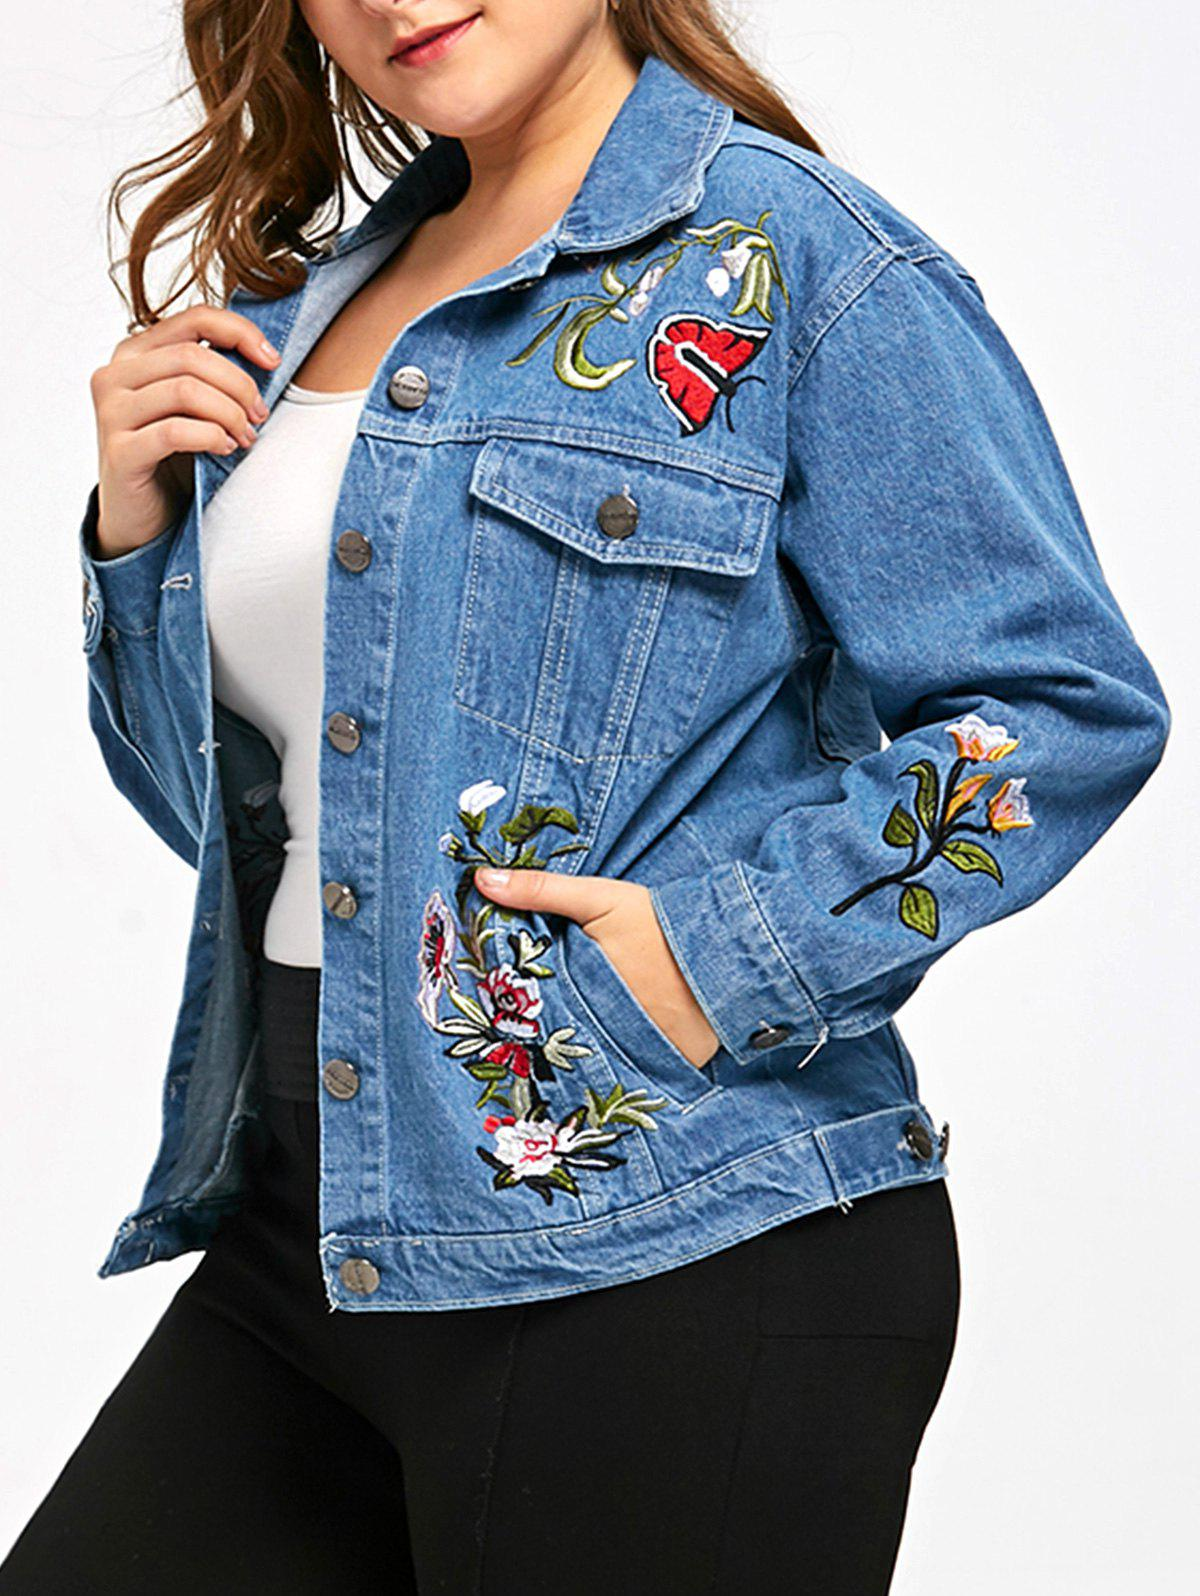 Button Up Plus Size Embroidery Denim JacketWOMEN<br><br>Size: 3XL; Color: DENIM BLUE; Clothes Type: Jackets; Material: Polyester,Spandex; Type: Slim; Shirt Length: Regular; Sleeve Length: Full; Collar: Turn-down Collar; Pattern Type: Others; Embellishment: Embroidery; Style: Fashion; Season: Fall,Spring; Weight: 0.3900kg; Package Contents: 1 x Jacket;